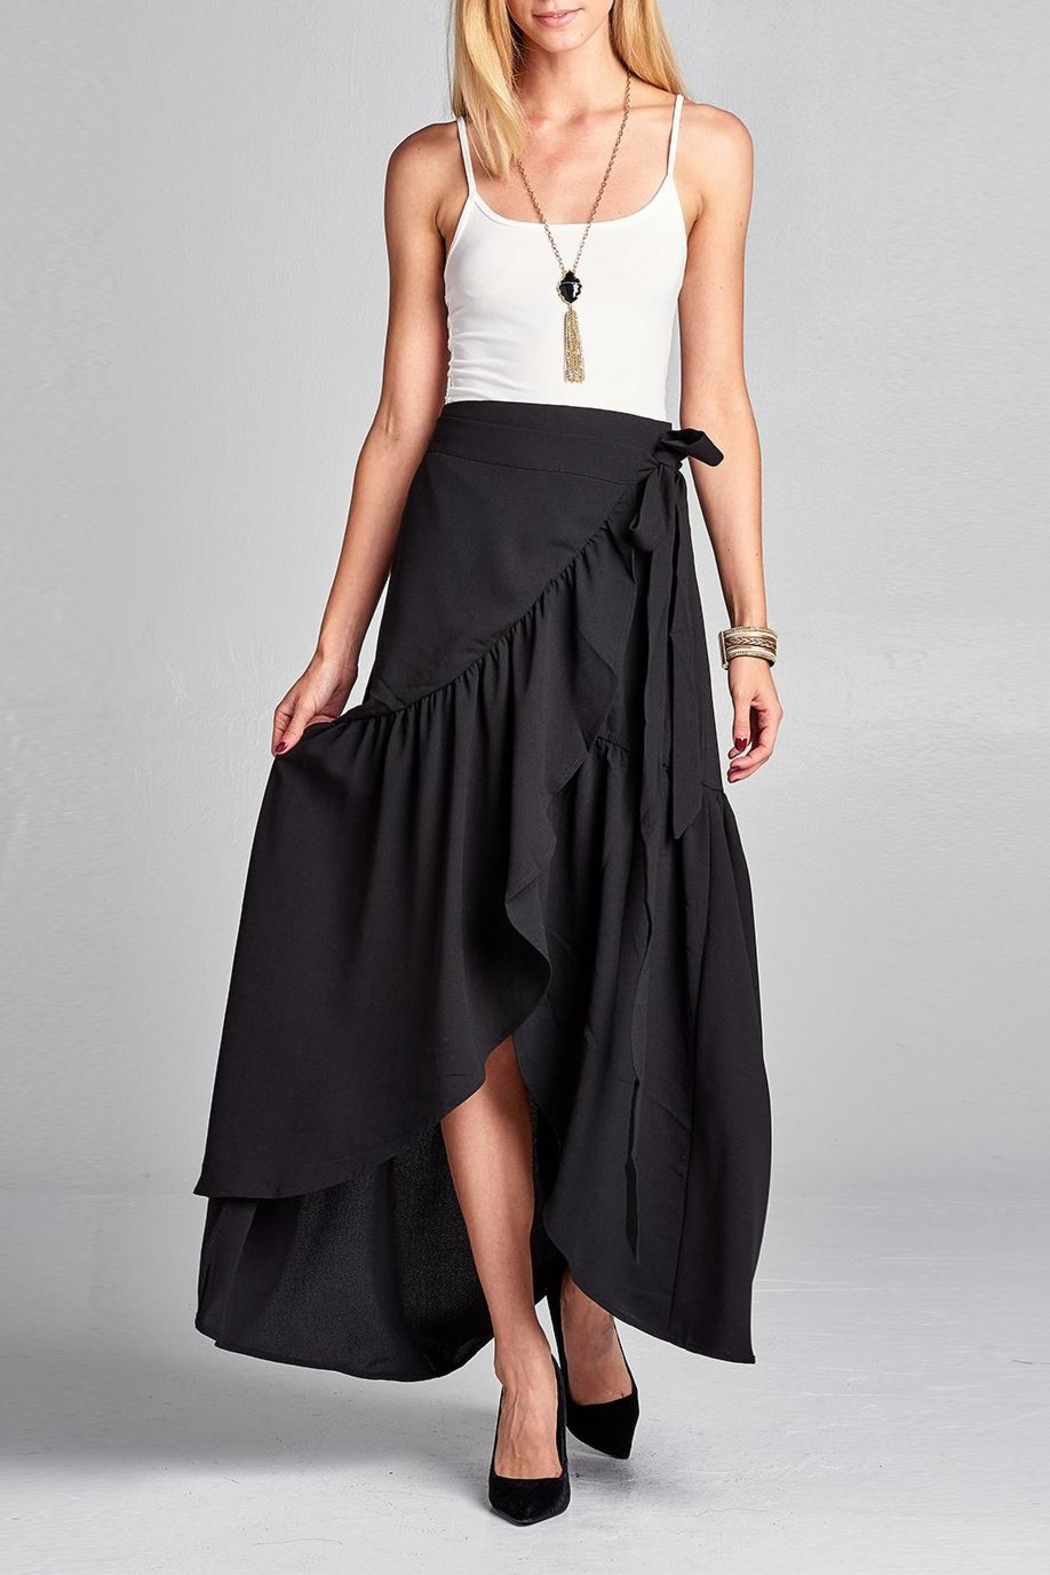 Love Kuza Frilled Wrap Skirt - Front Full Image